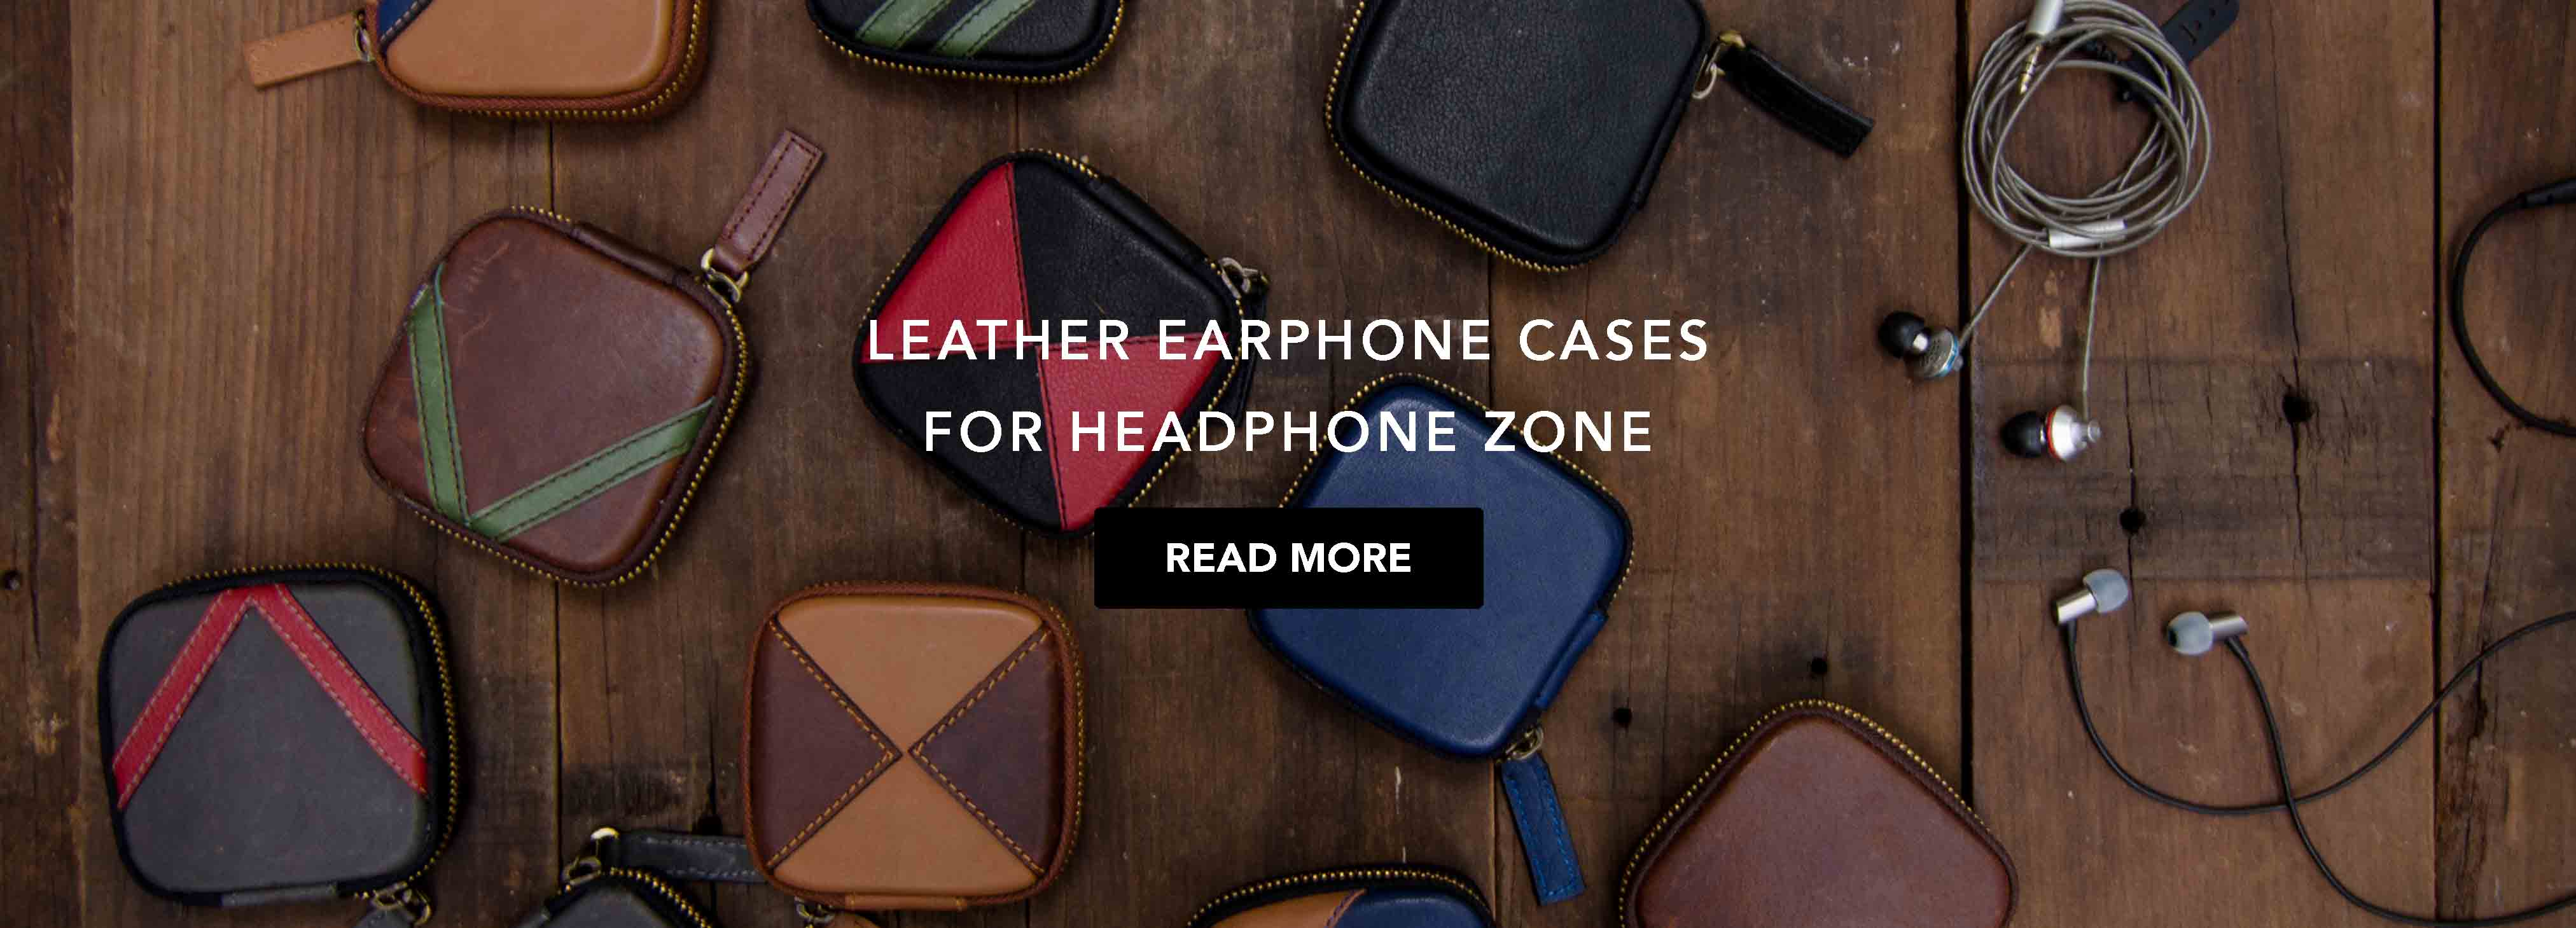 leather-earphone-case-headphone-zone